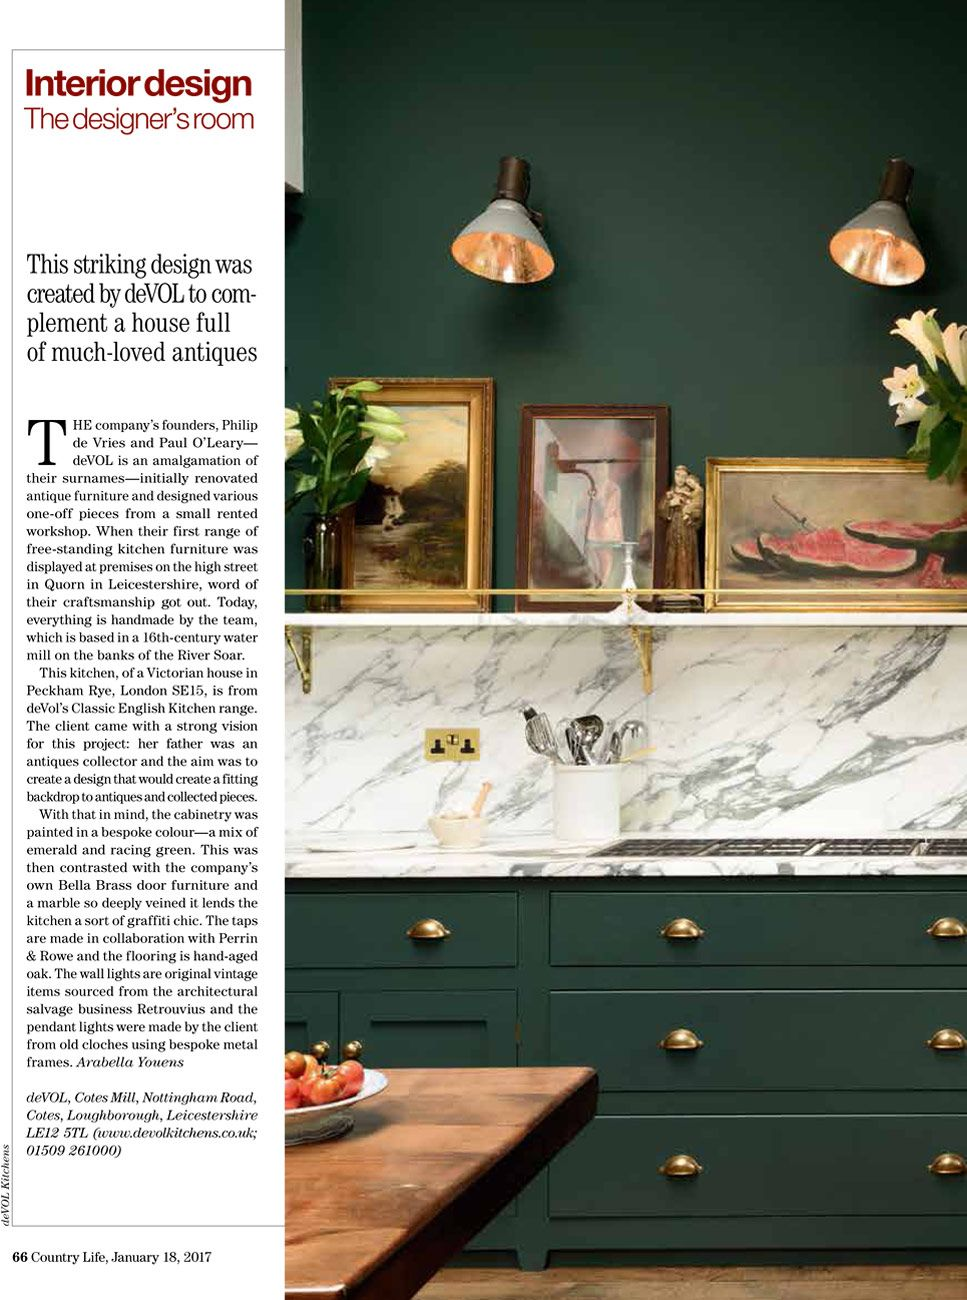 The Peckham Rye Classic Kitchen by deVOL was featured in